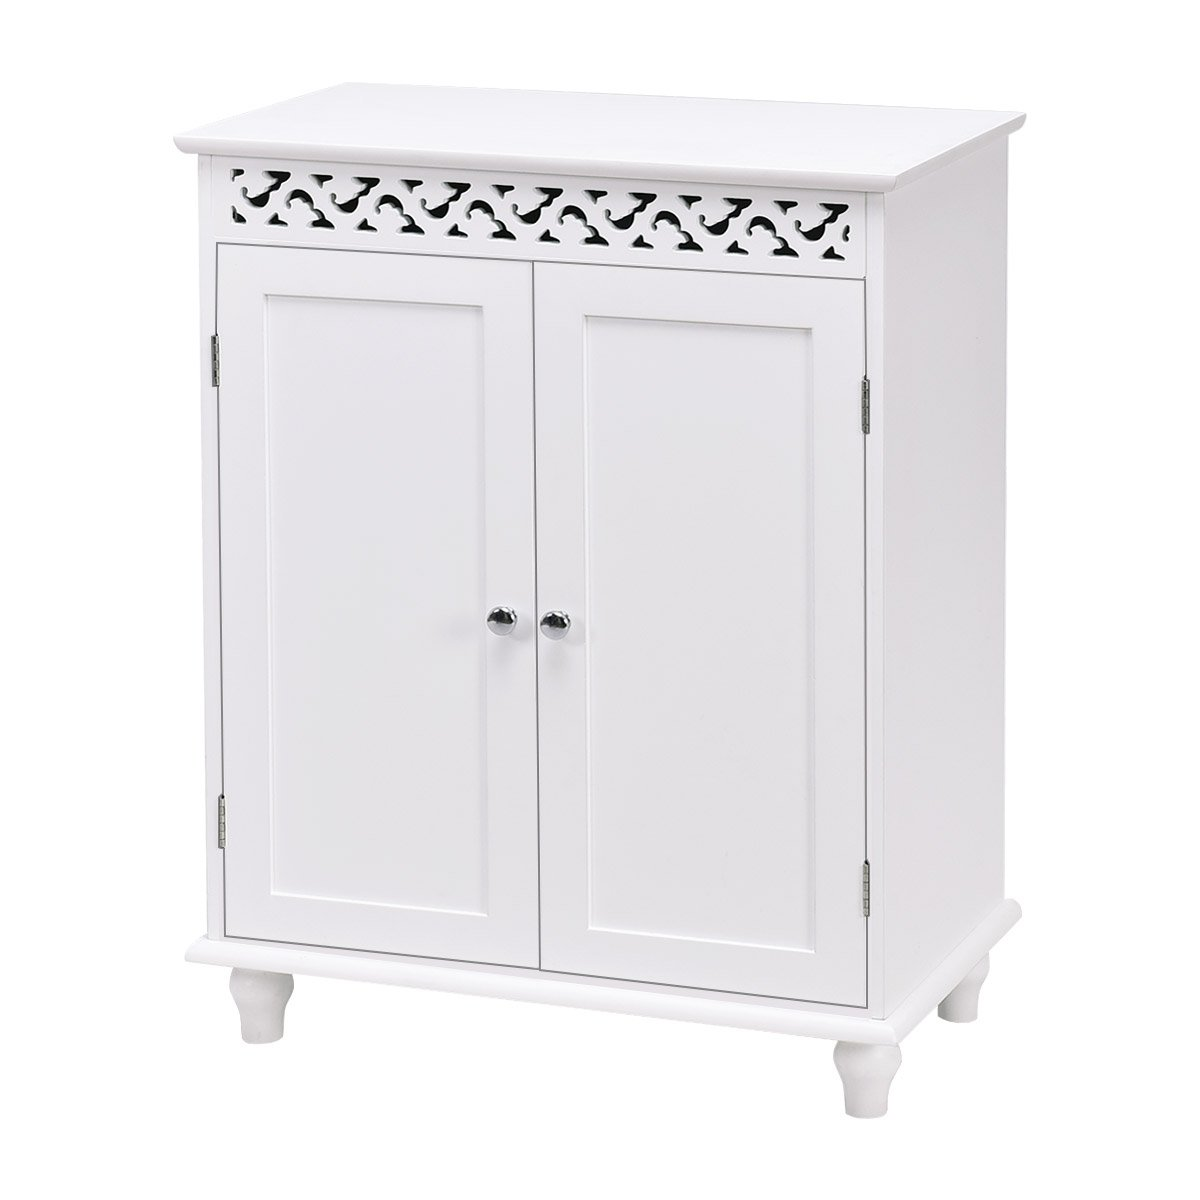 GentleShower Storage Cabinet, Wooden Floor Cabinet with 2 Doors and 2 Shelves, Home Fashions Cabinet Cupboard with White Finish and Stylish Design, Snow White by GentleShower